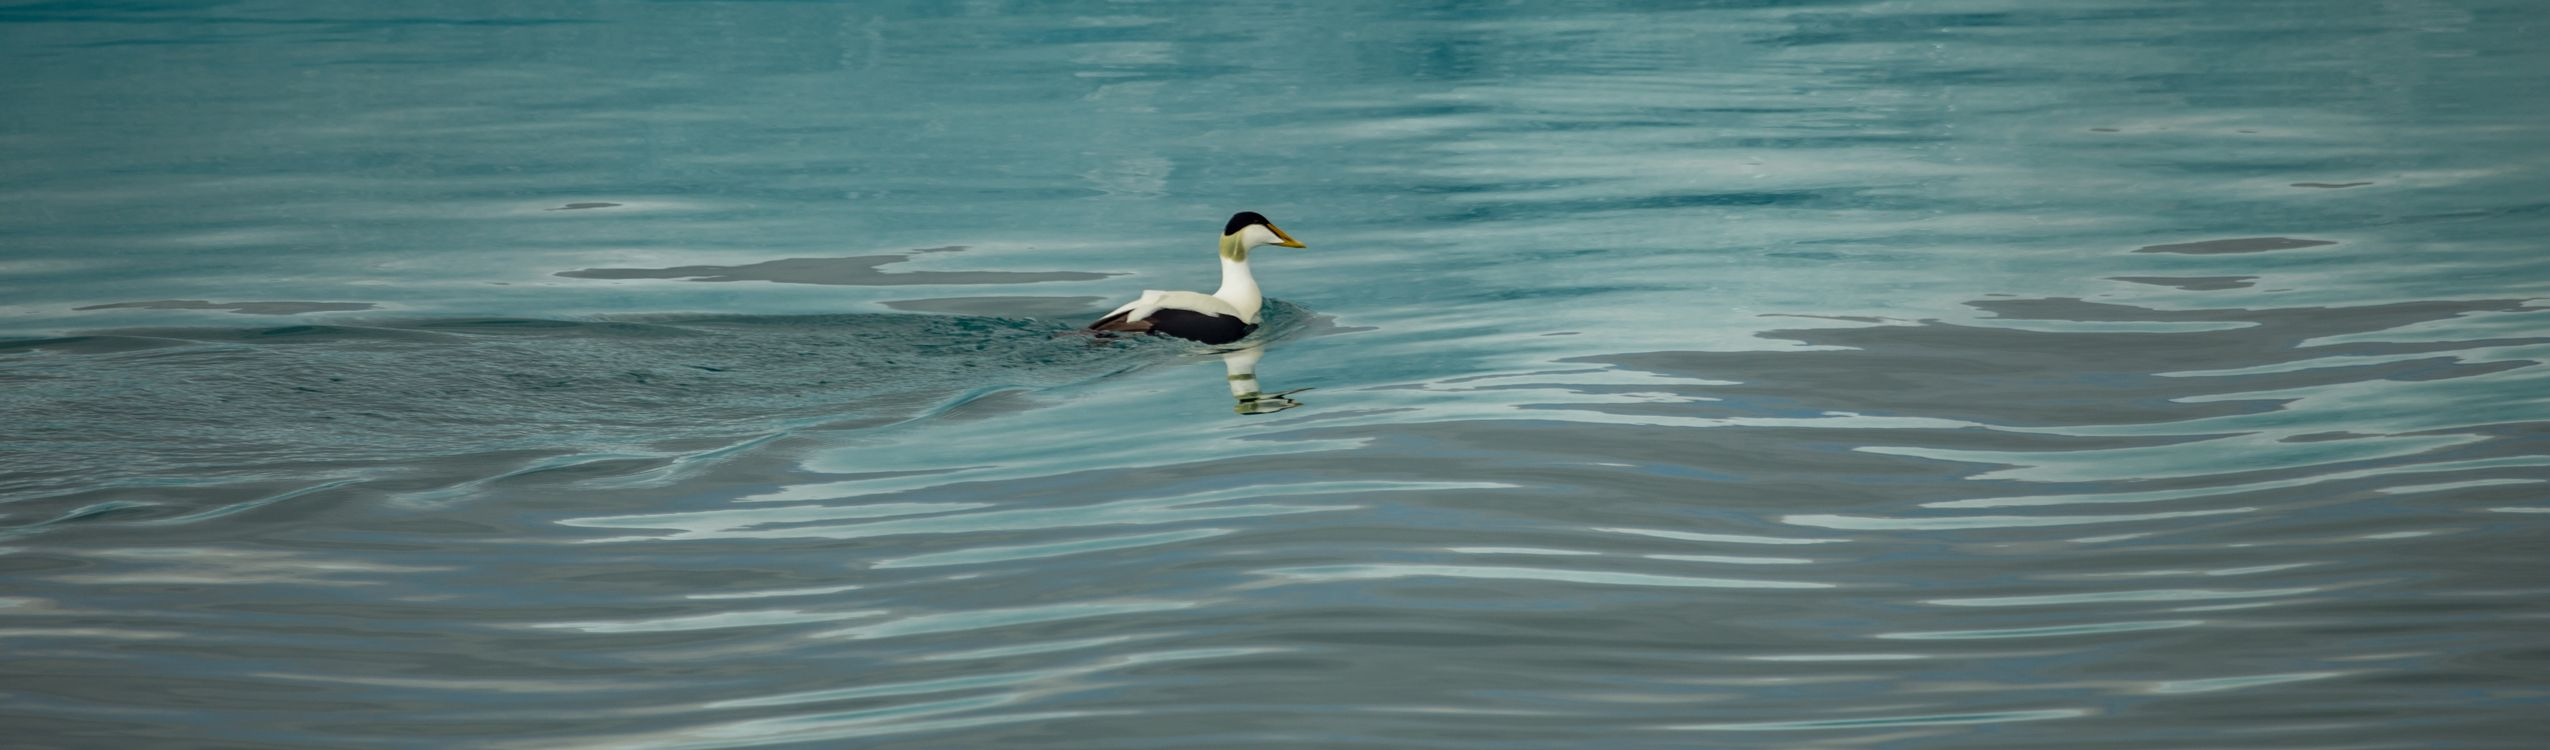 Eider duck at Jokulsarlon